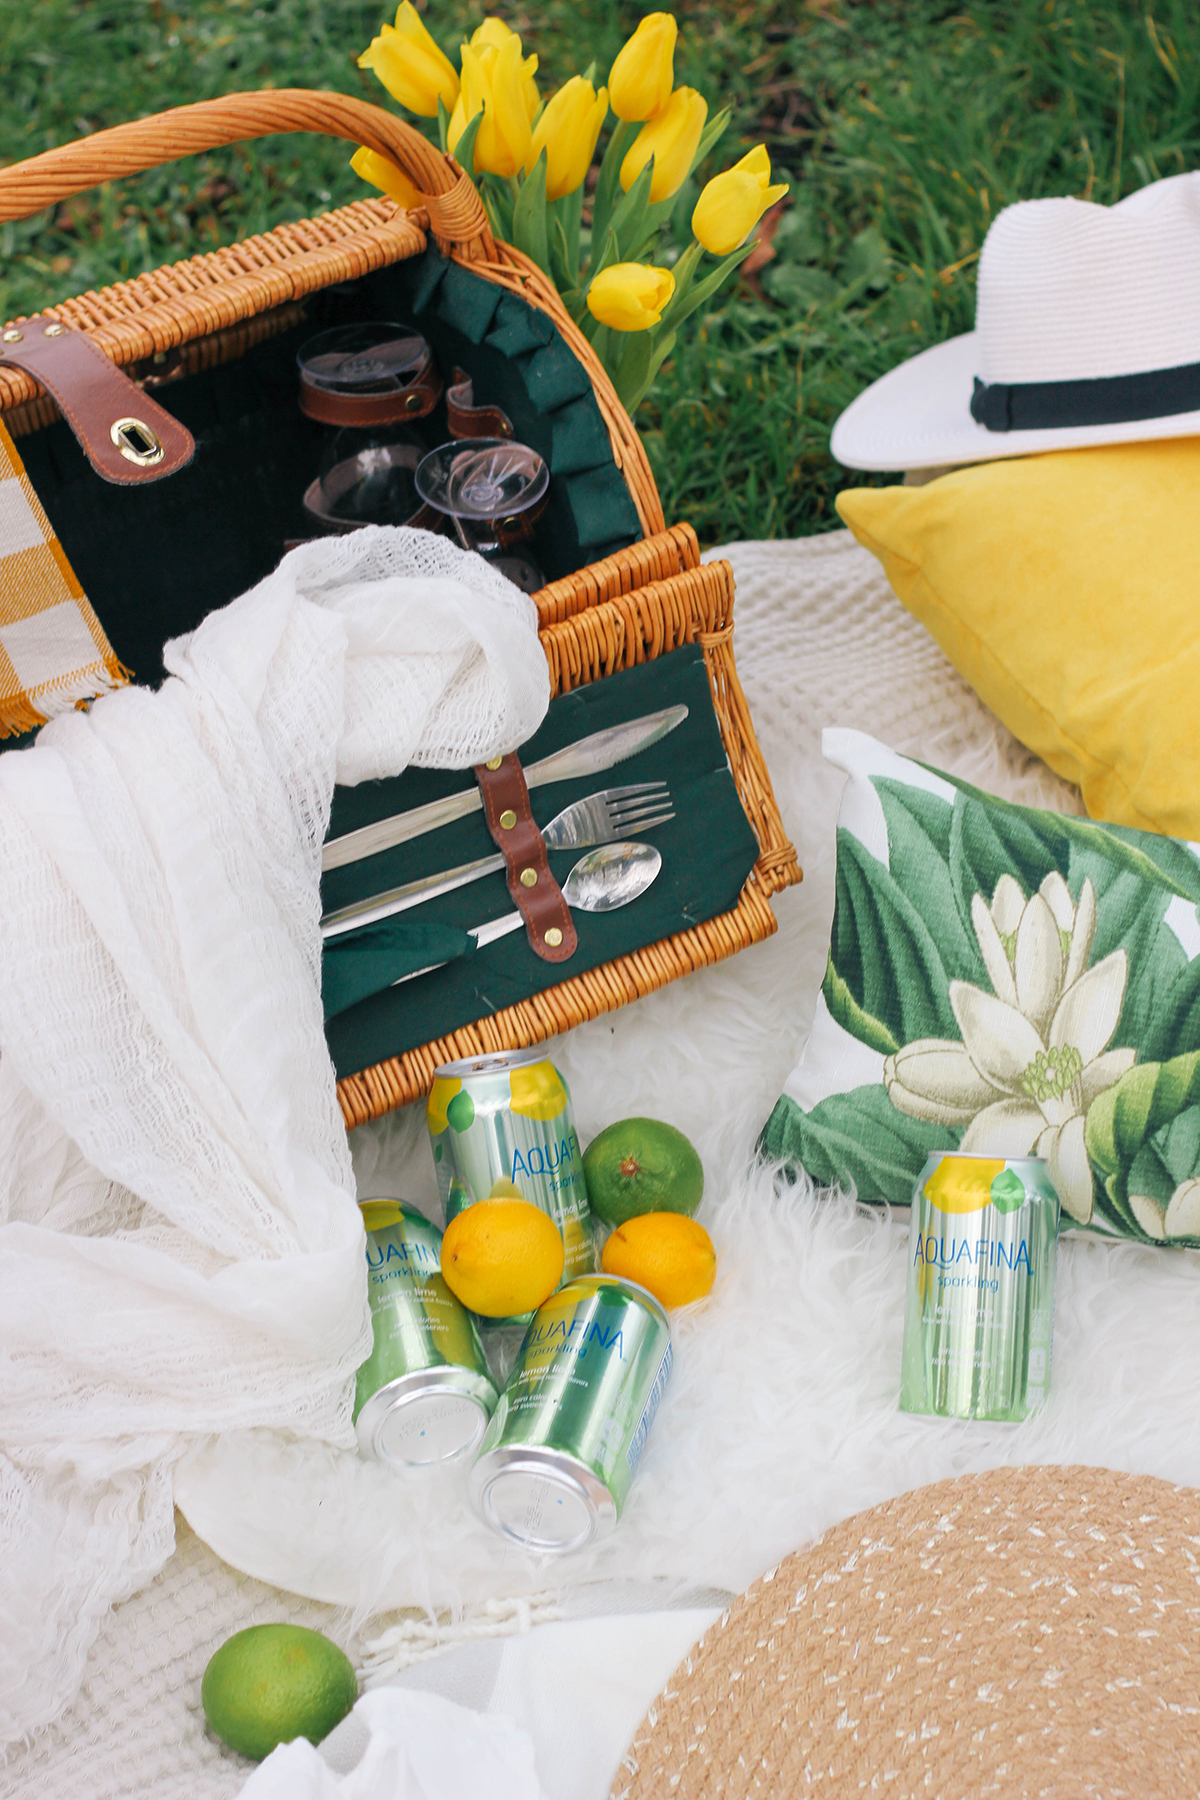 Upgrade your next spring picnic with new Aquafina Sparkling from Target.